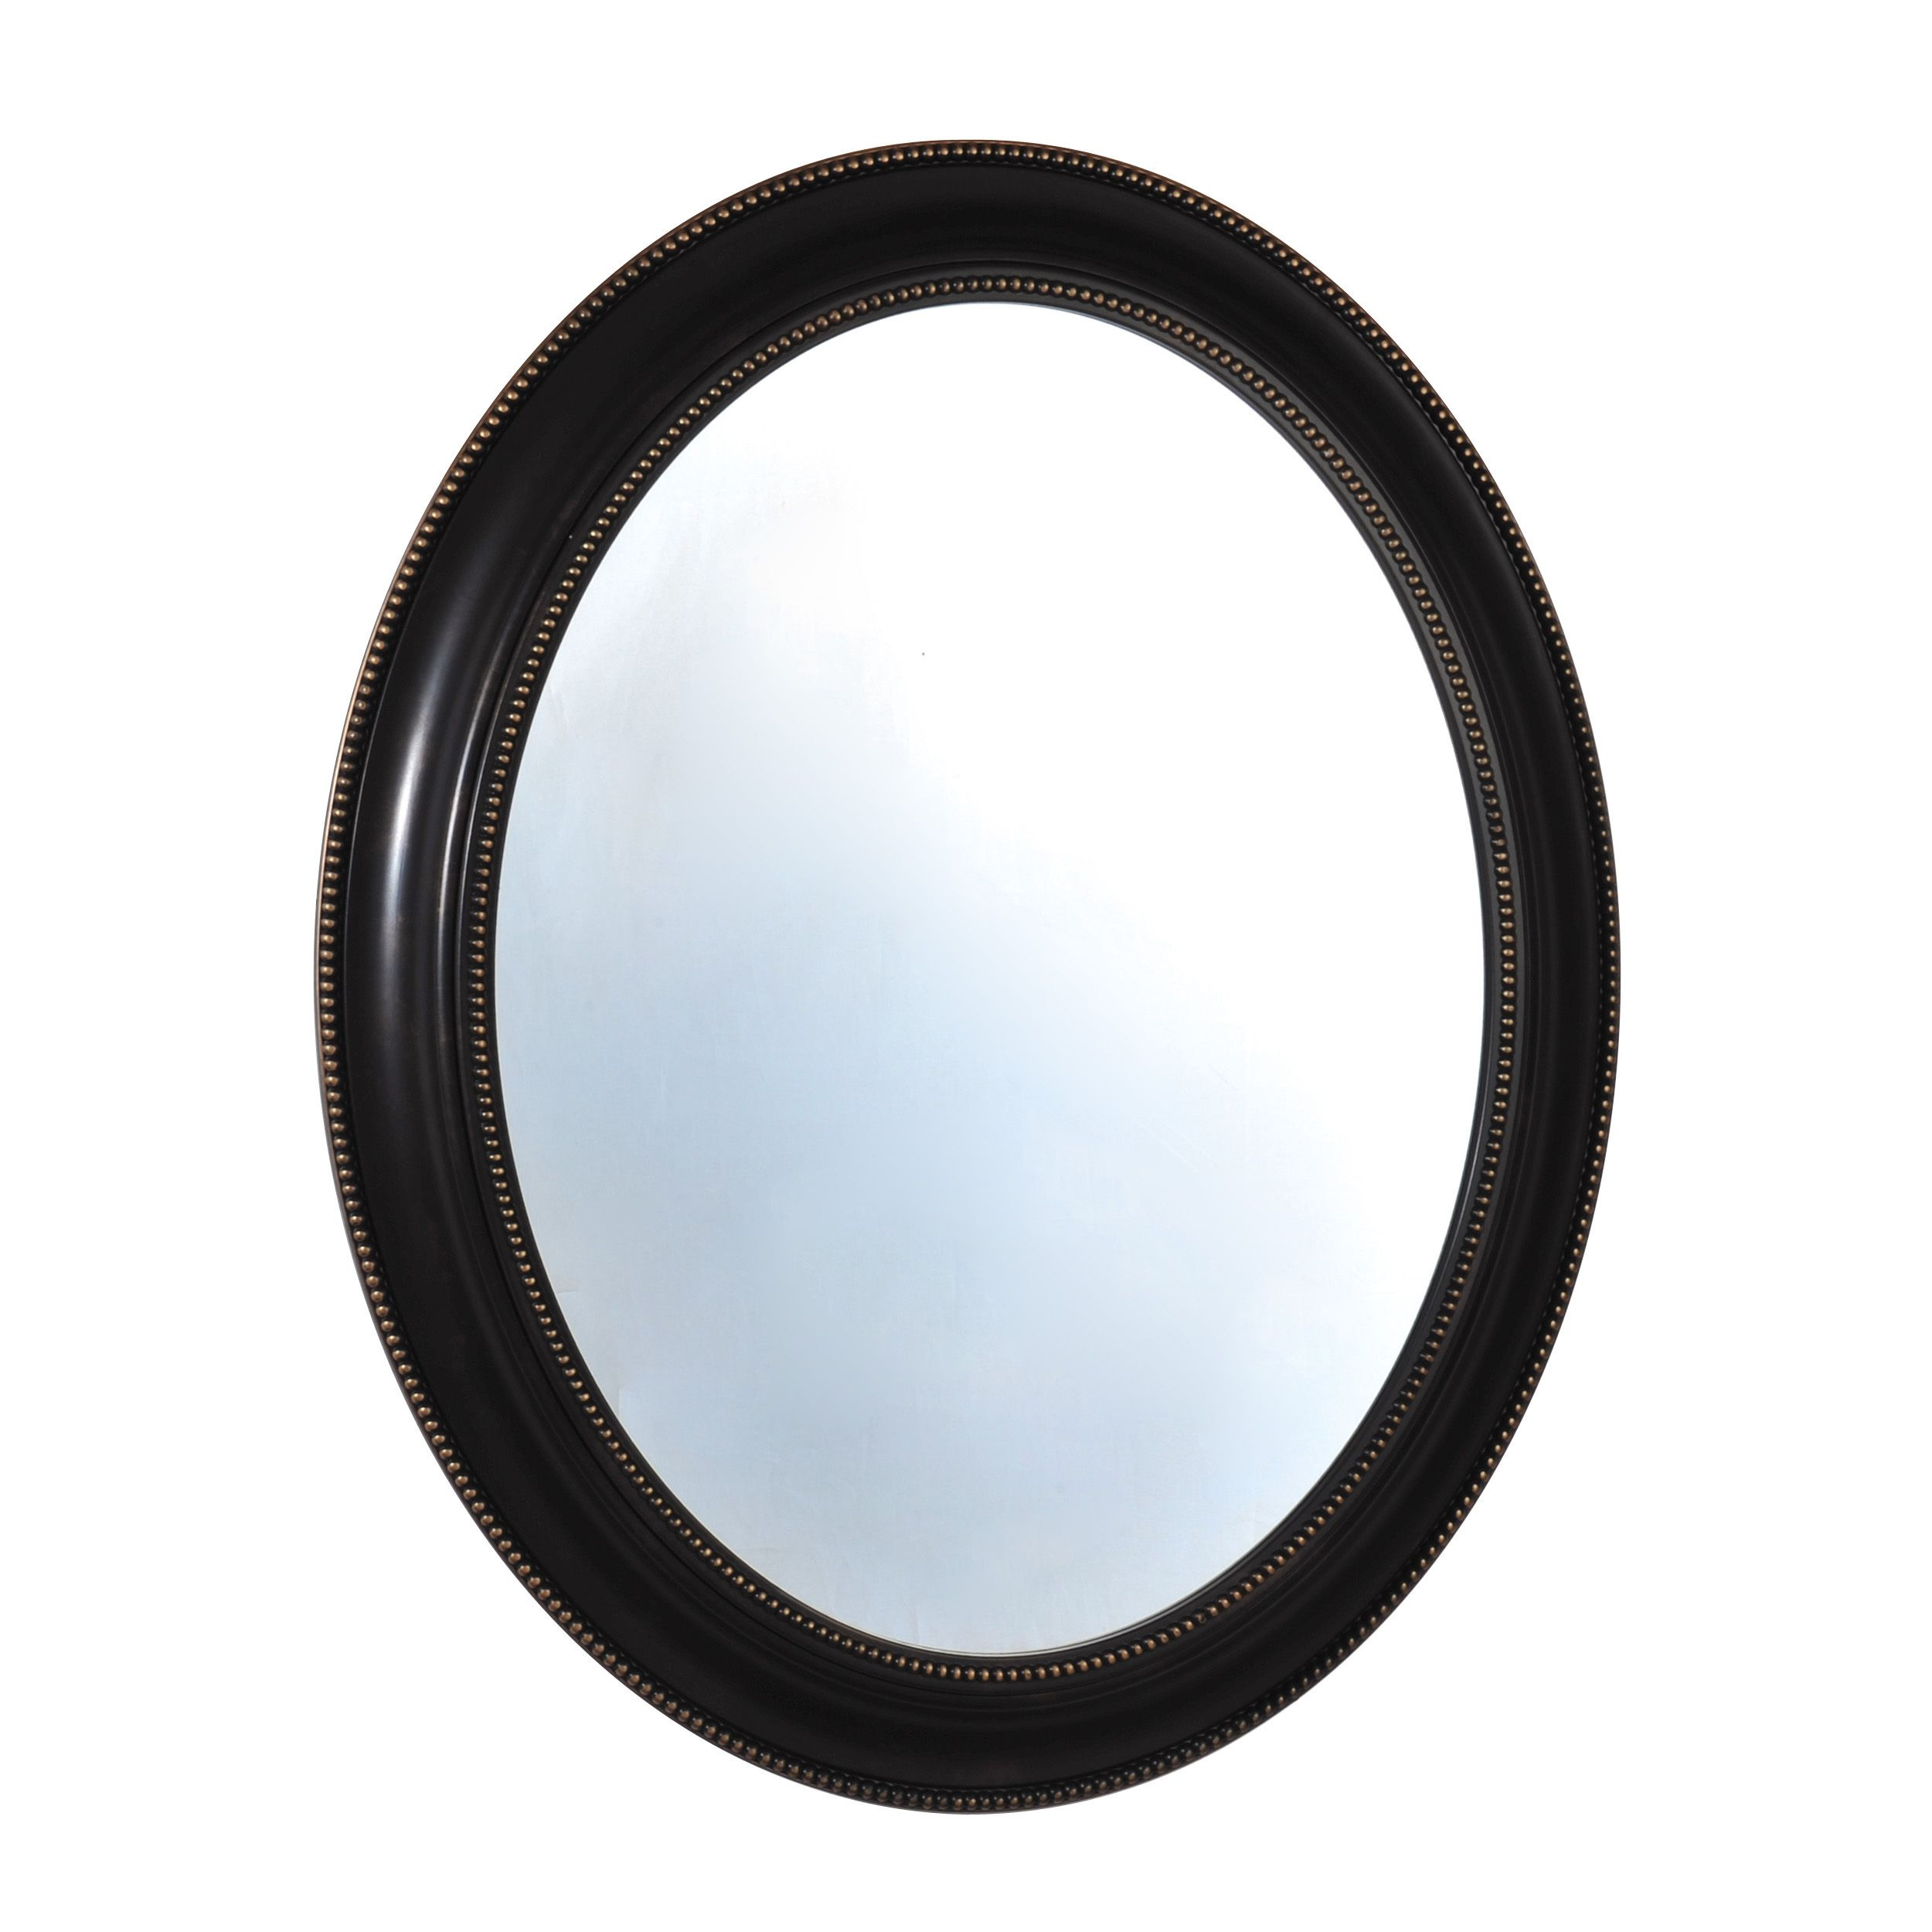 This Elements Black Bead Oval Mirror Features A Simple Traditional